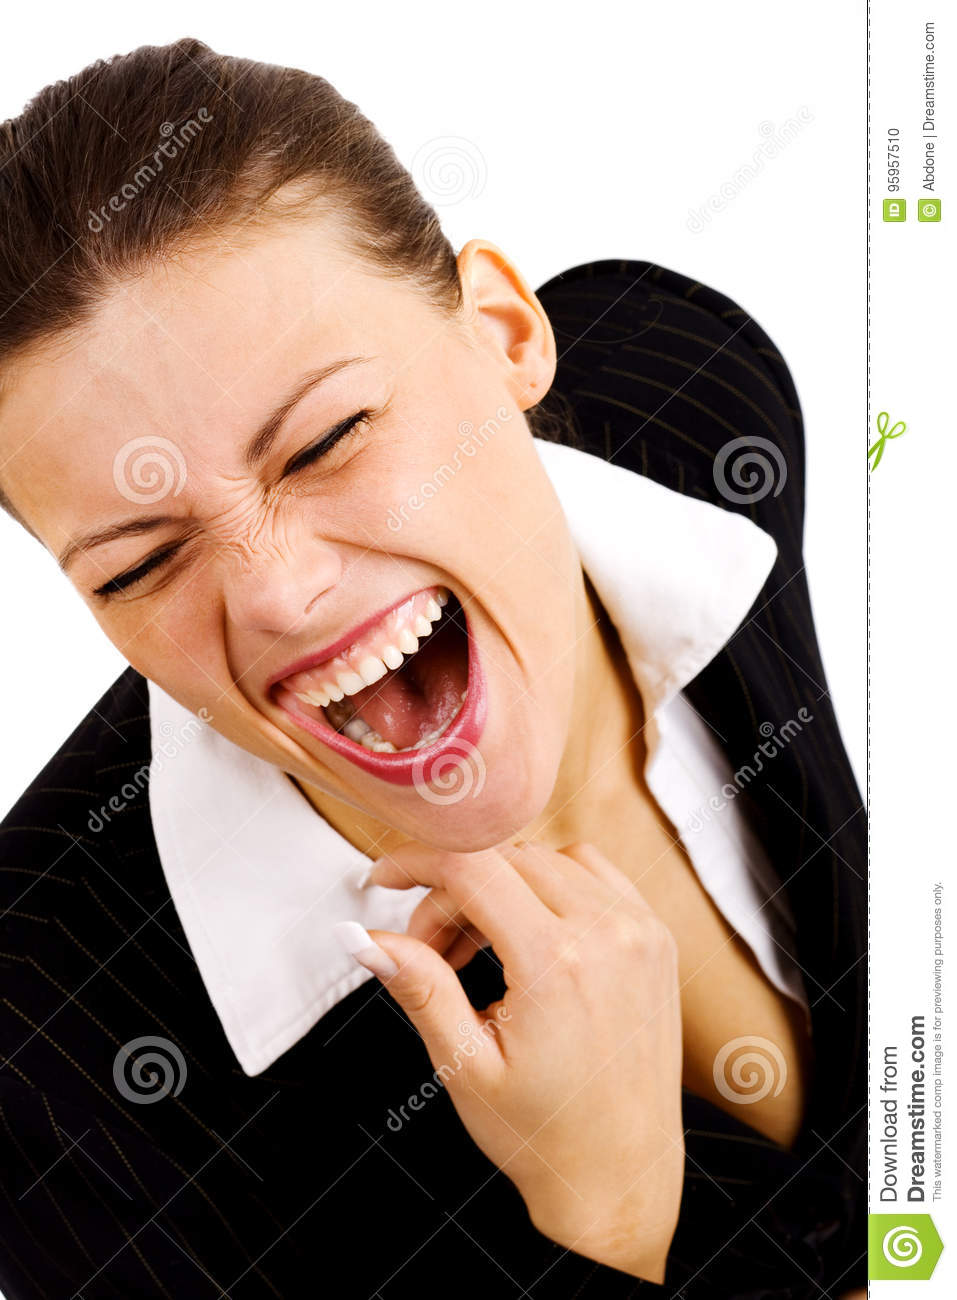 Image Of Laughing Hysterically : image, laughing, hysterically, Young, Businesswoman, Laughing, Hysterically, Stock, Photo, Image, Background,, Businesswoman:, 95957510